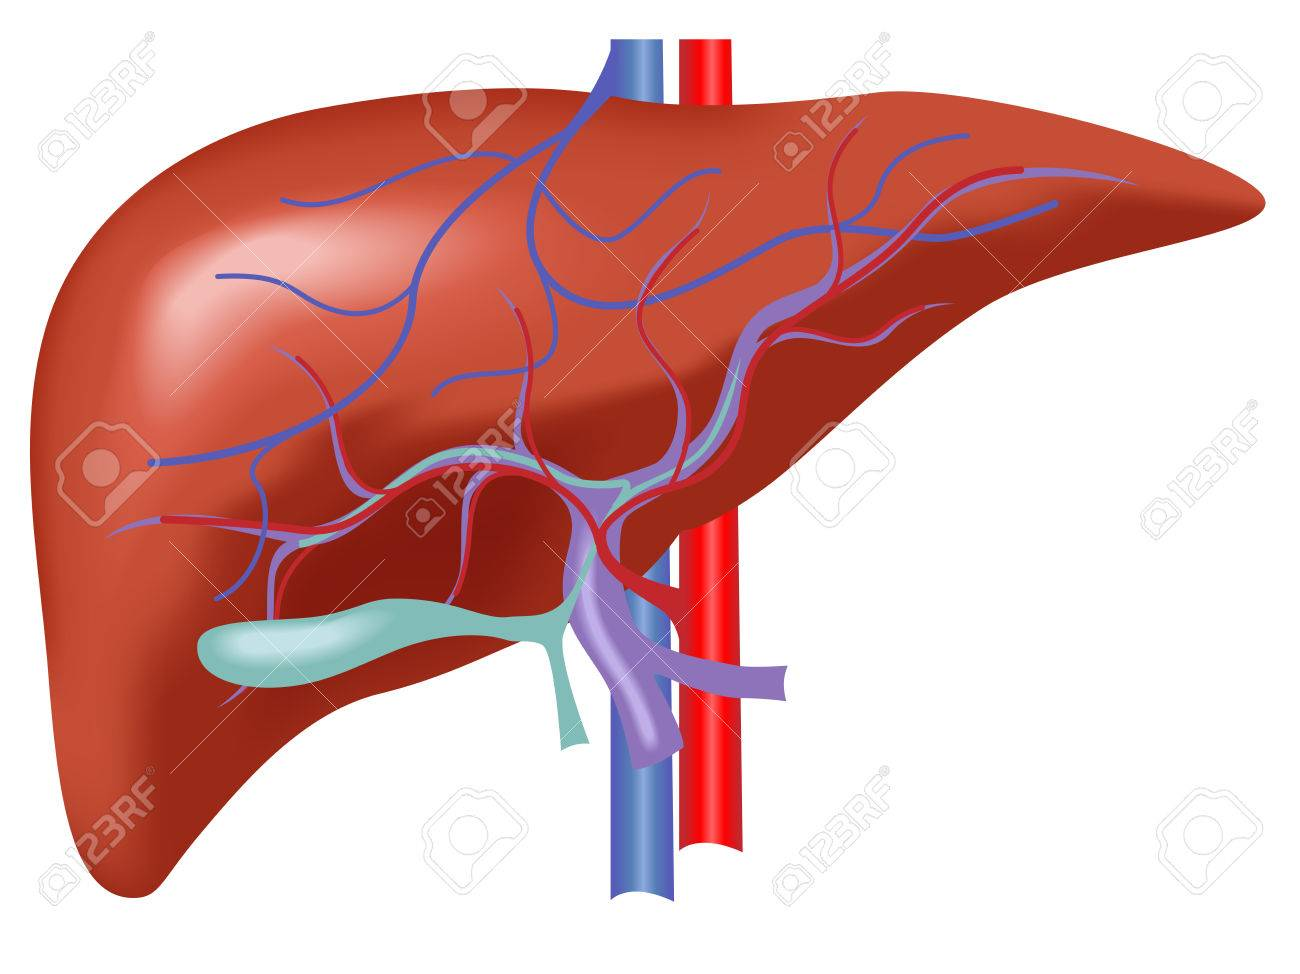 Human Liver Anatomy , Liver Vector With Artery And Vein Blood ...